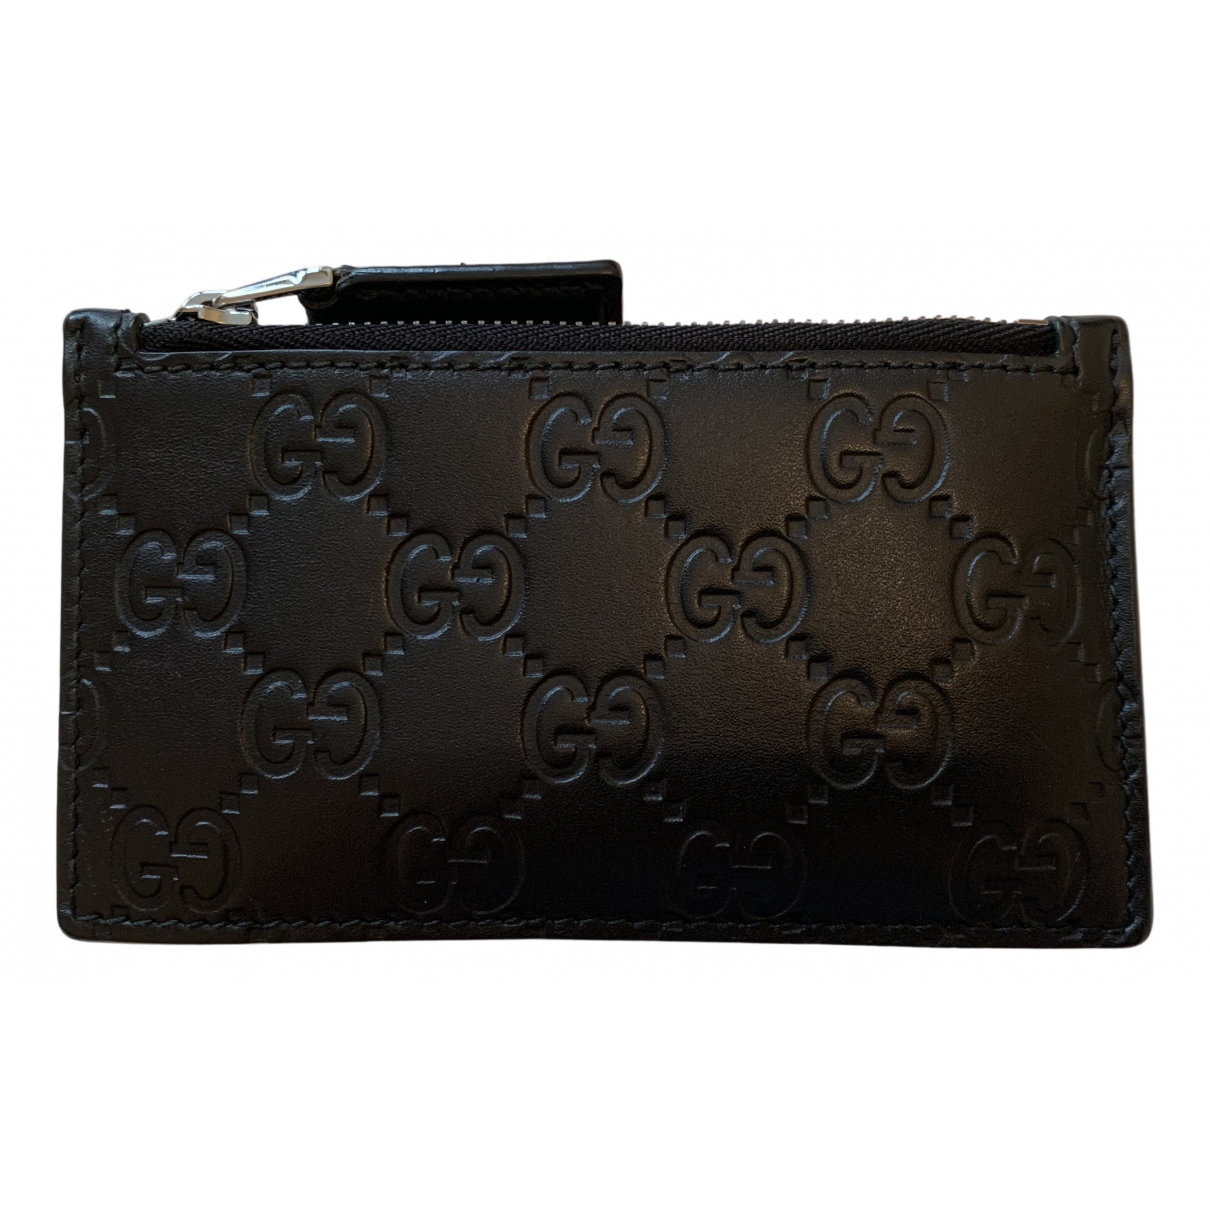 Gucci Ophidia Black Leather Purses, wallet & cases for Women N